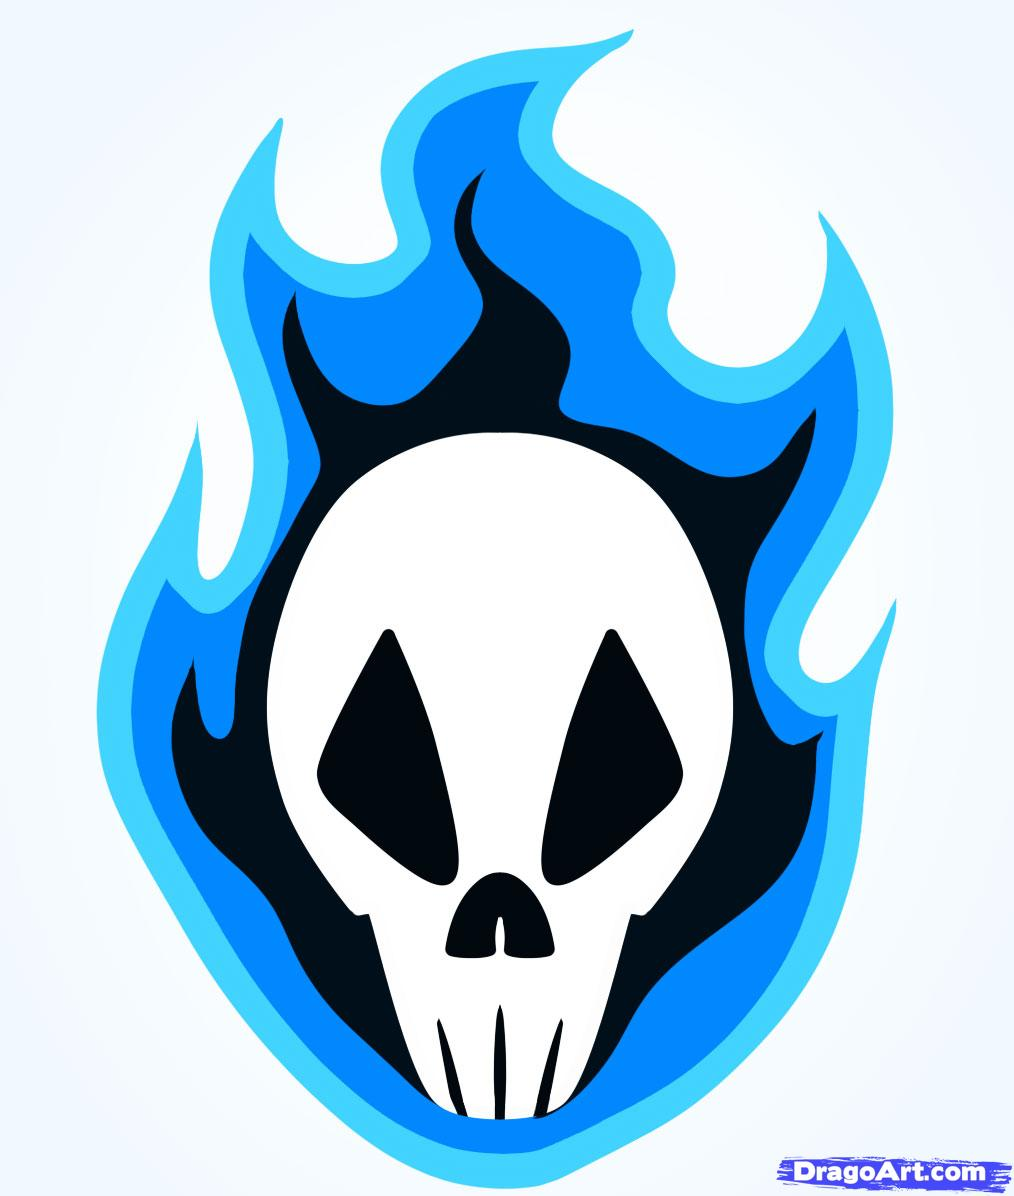 Ssckull clipart flame drawing How Draw how%20to%20draw%20cartoon%20fire%20flames Images Fire